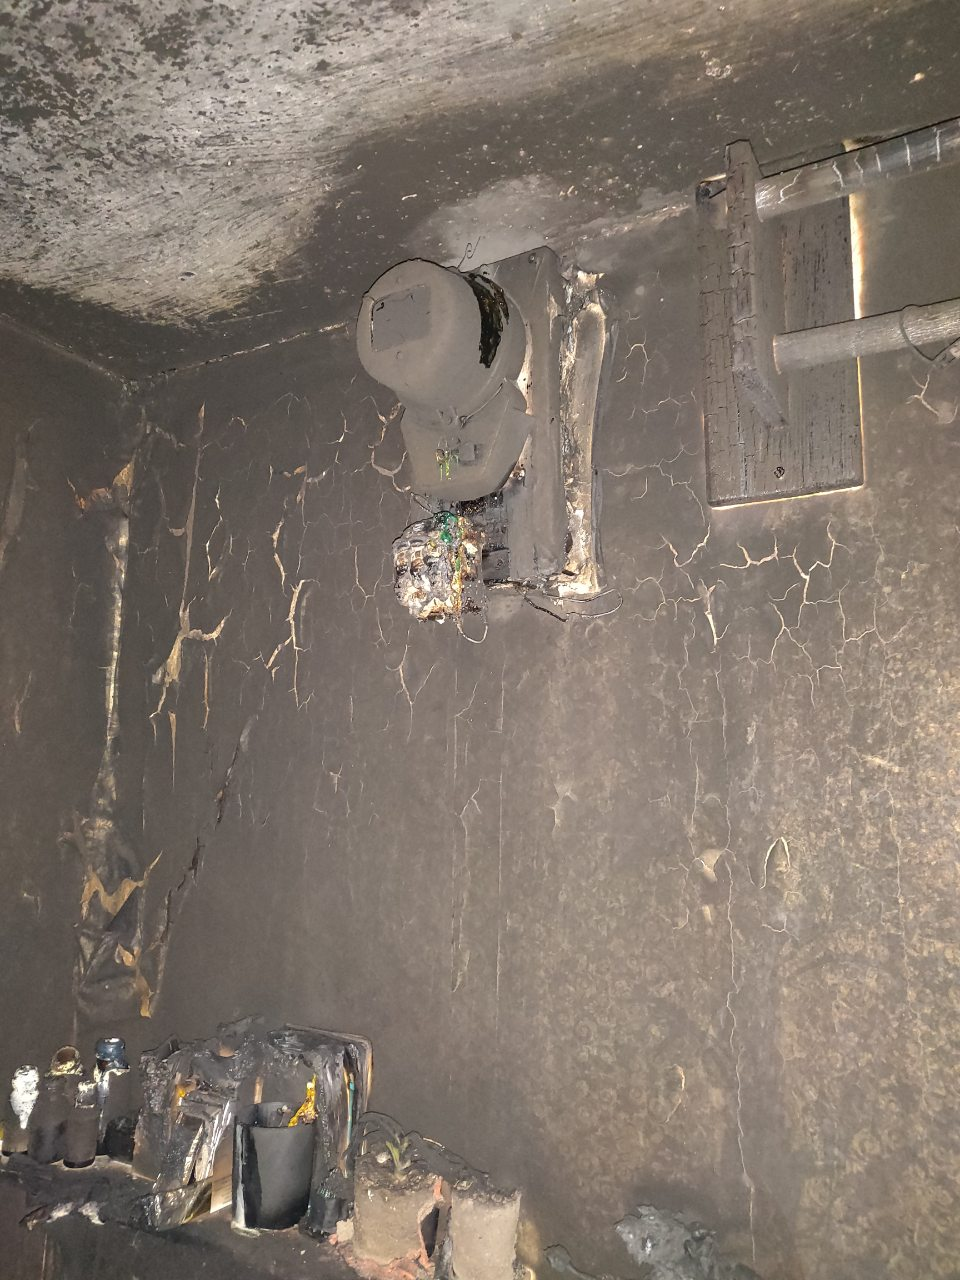 A seven-months-old boy has suffered in a fire. Help is needed | People's project